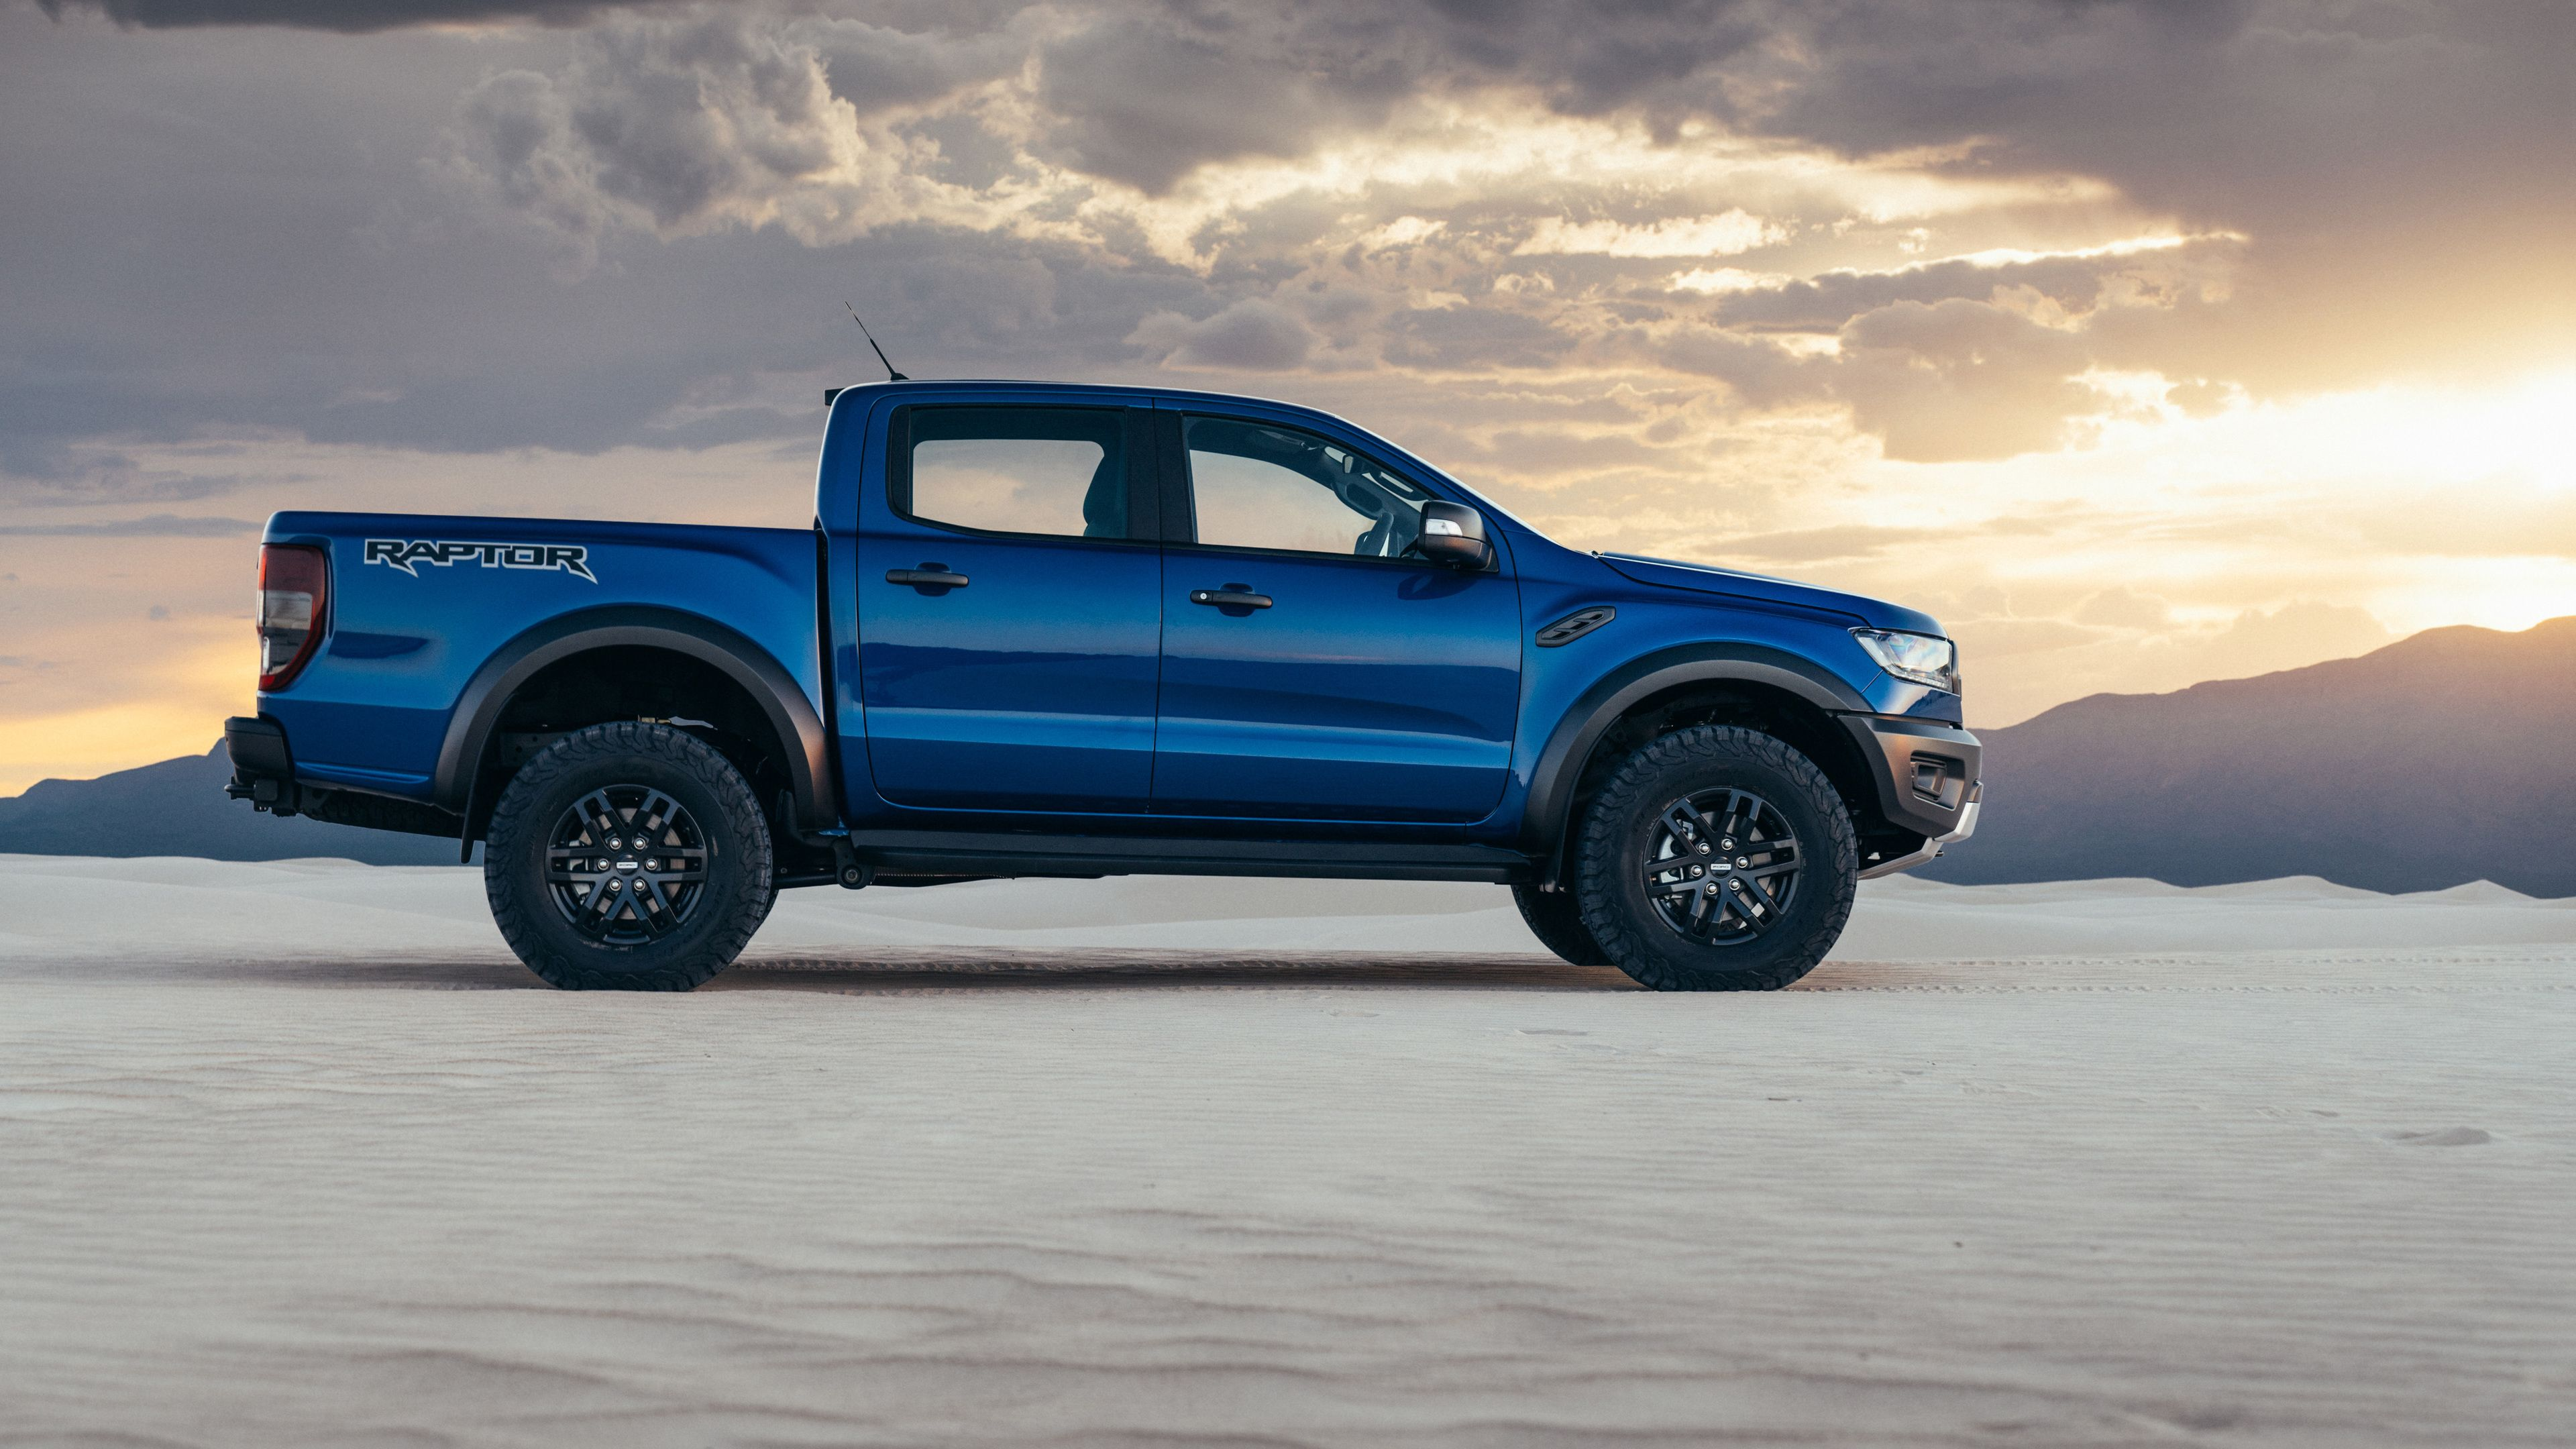 Wallpaper 4k Ford Ranger Raptor Side View 2019 2019 Cars